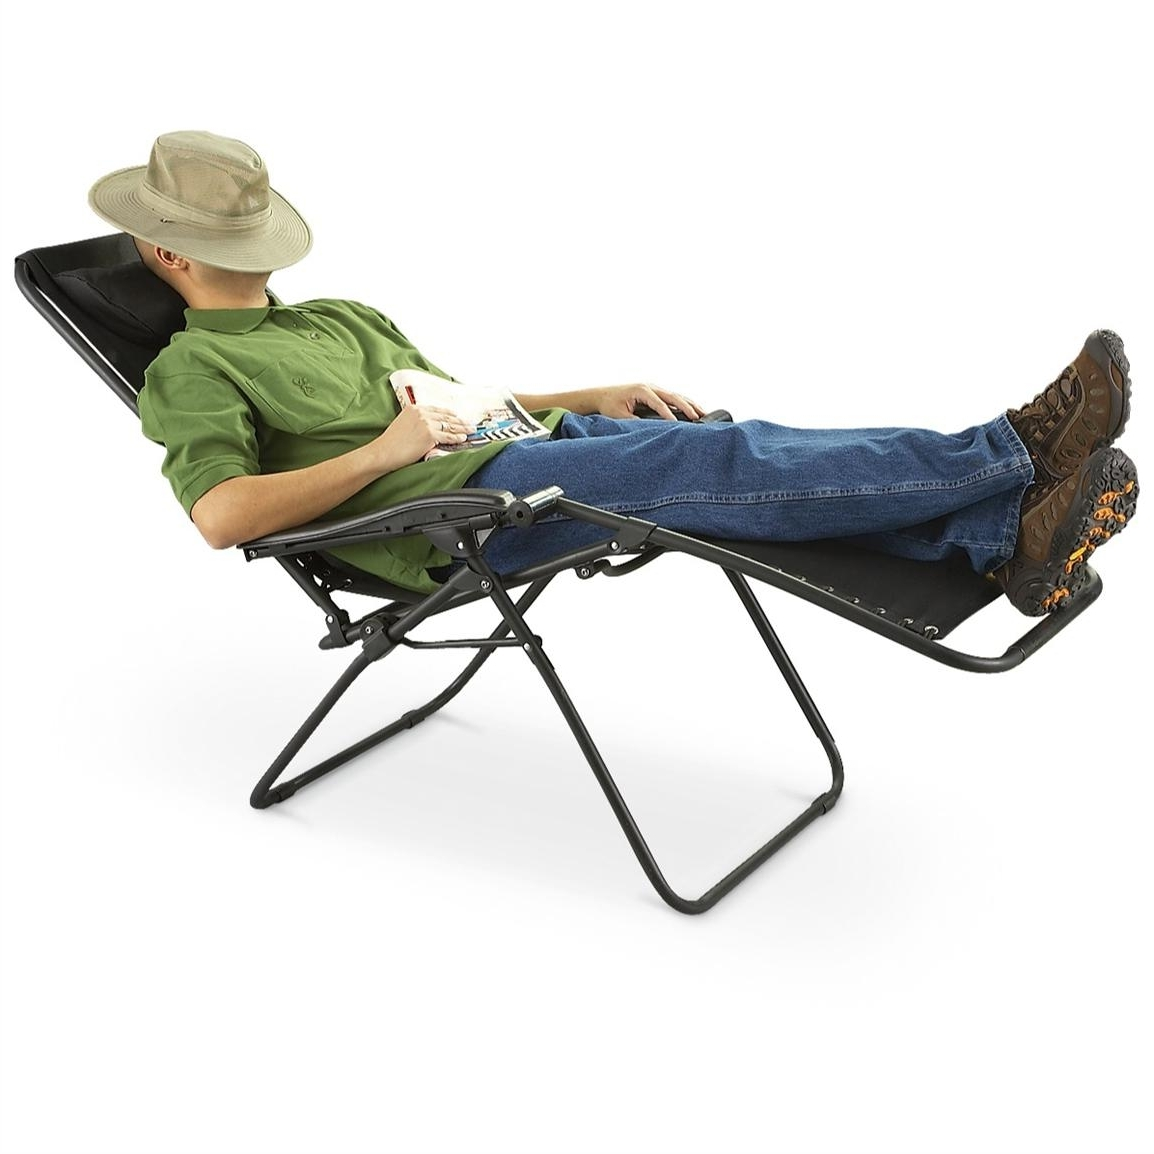 Zero Gravity Chaise Lounge Chairs Throughout Most Recently Released Zero Gravity Lounge Chair – $ (View 2 of 15)